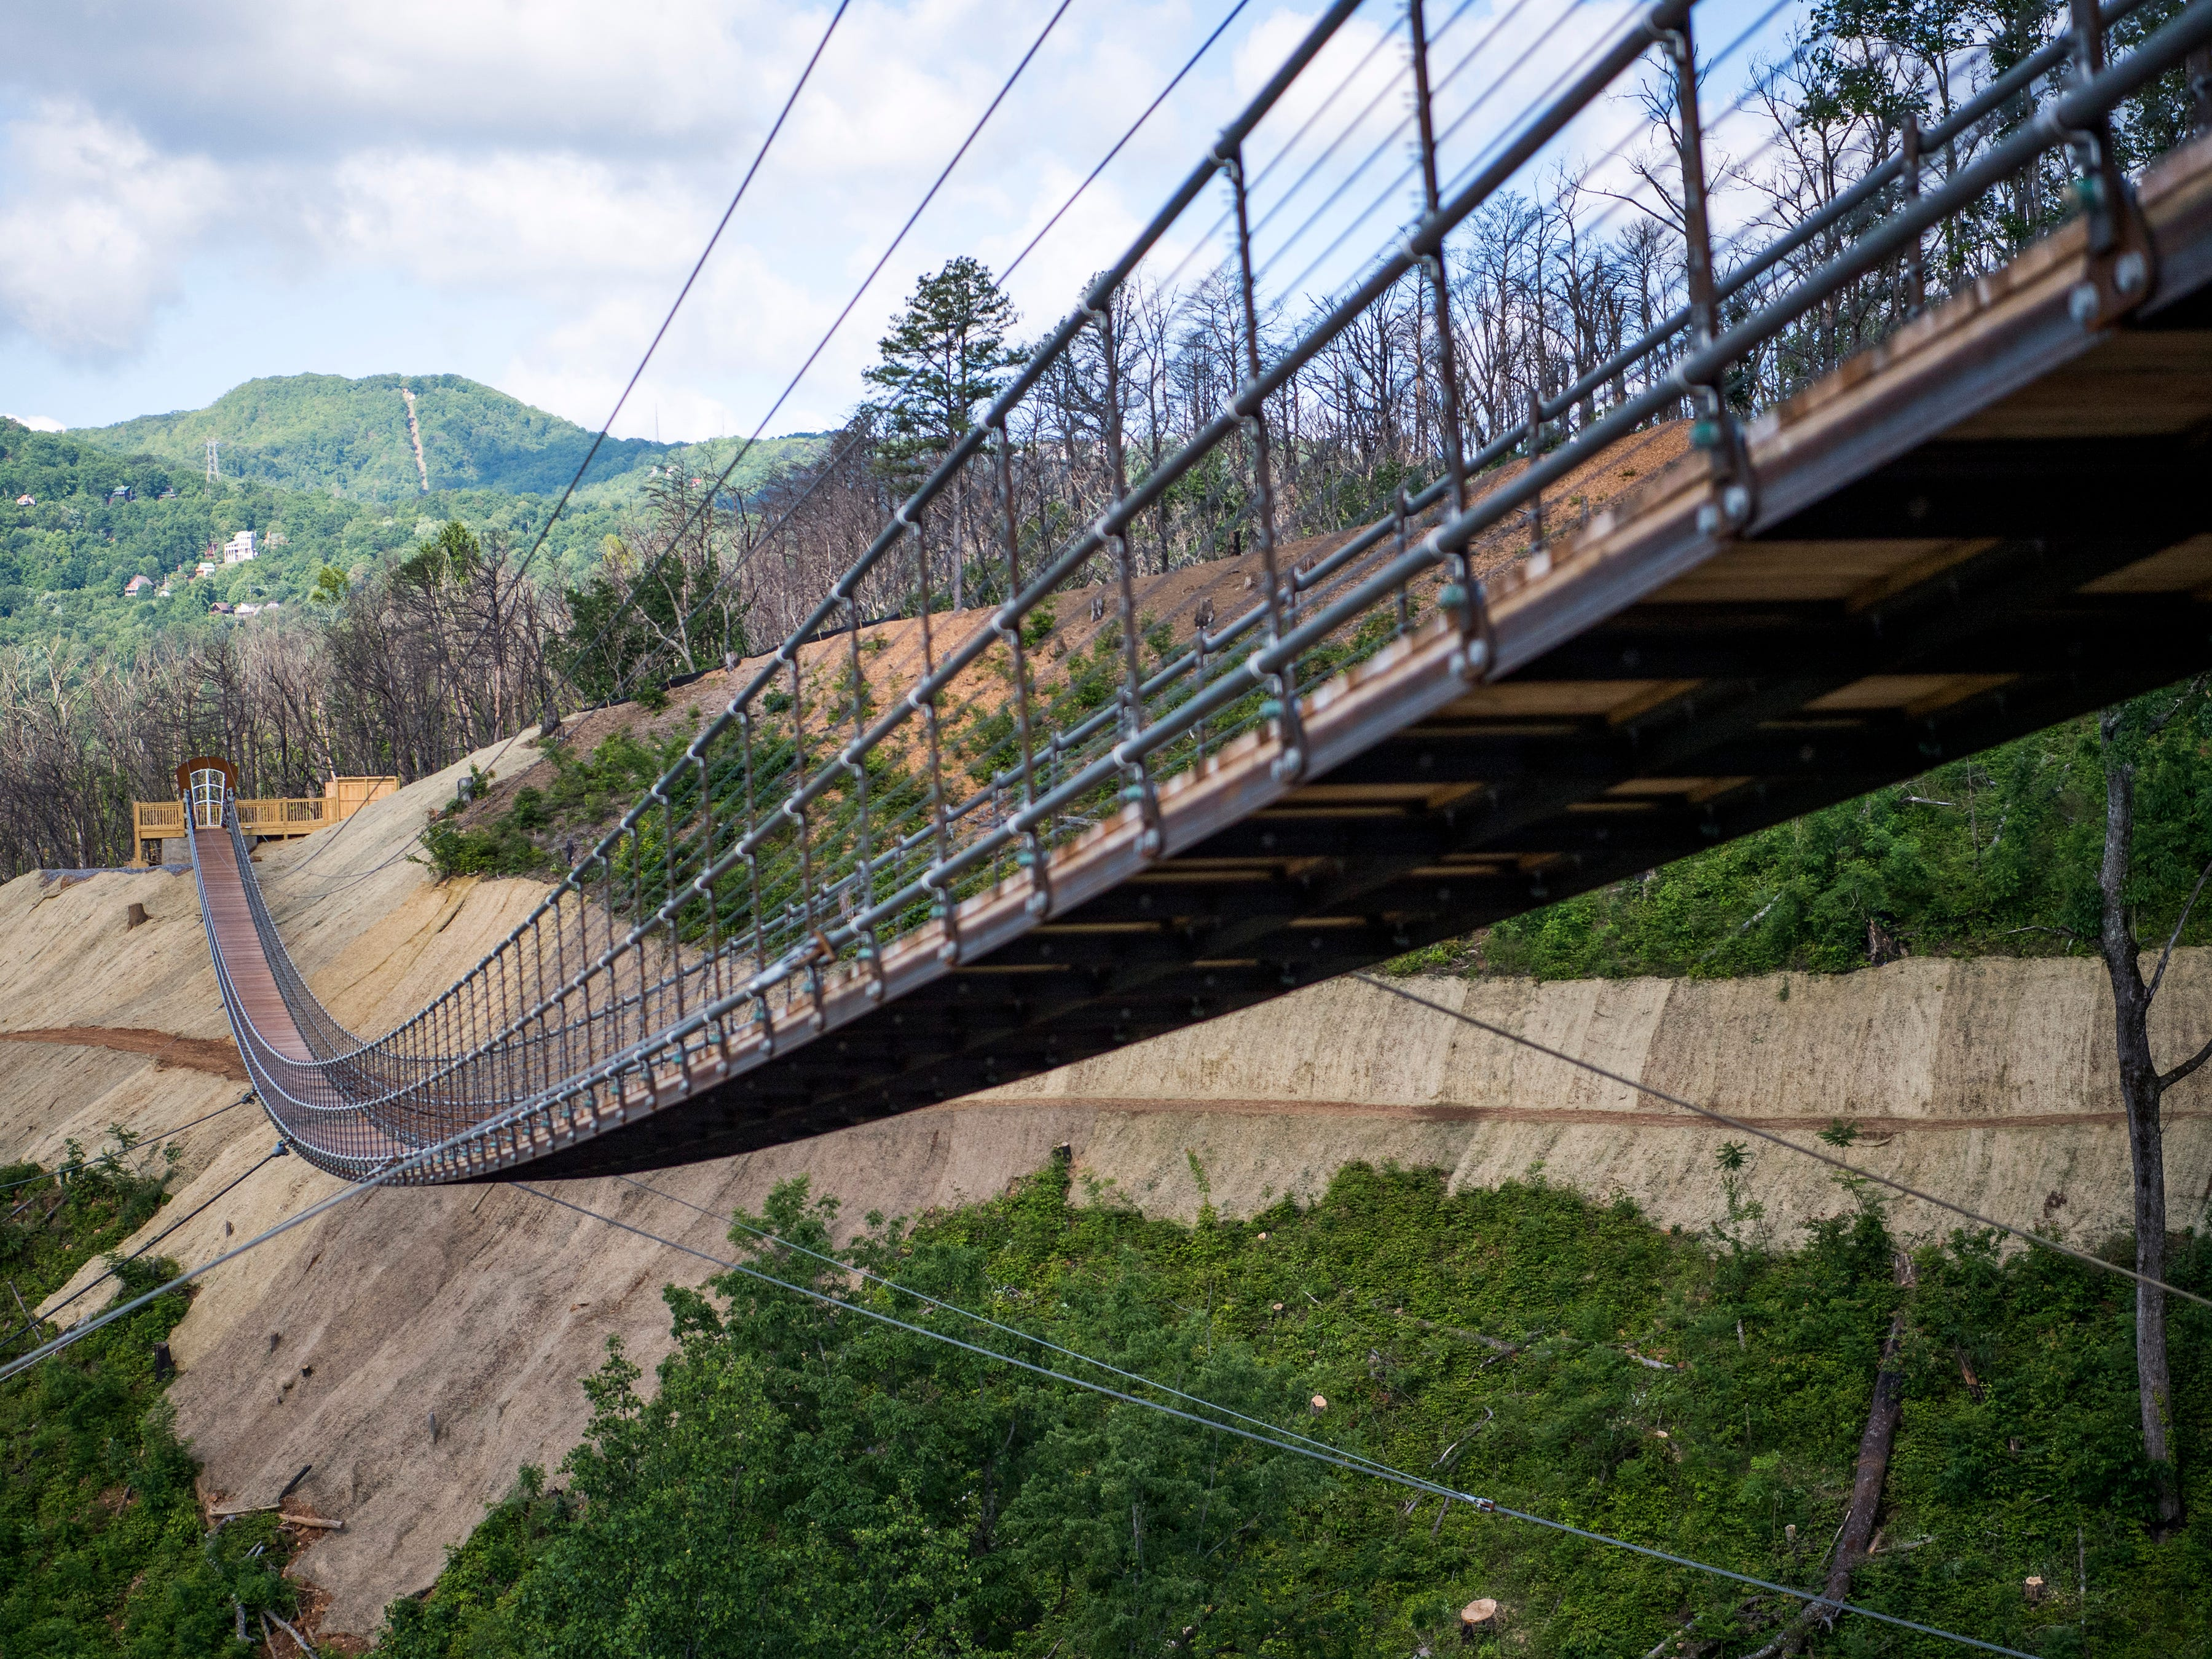 The Gatlinburg SkyBridge, pictured on Tuesday, May 14, 2019, is North America's longest pedestrian suspension bridge and offers panoramic views of Gatlinburg and the Smoky Mountains.